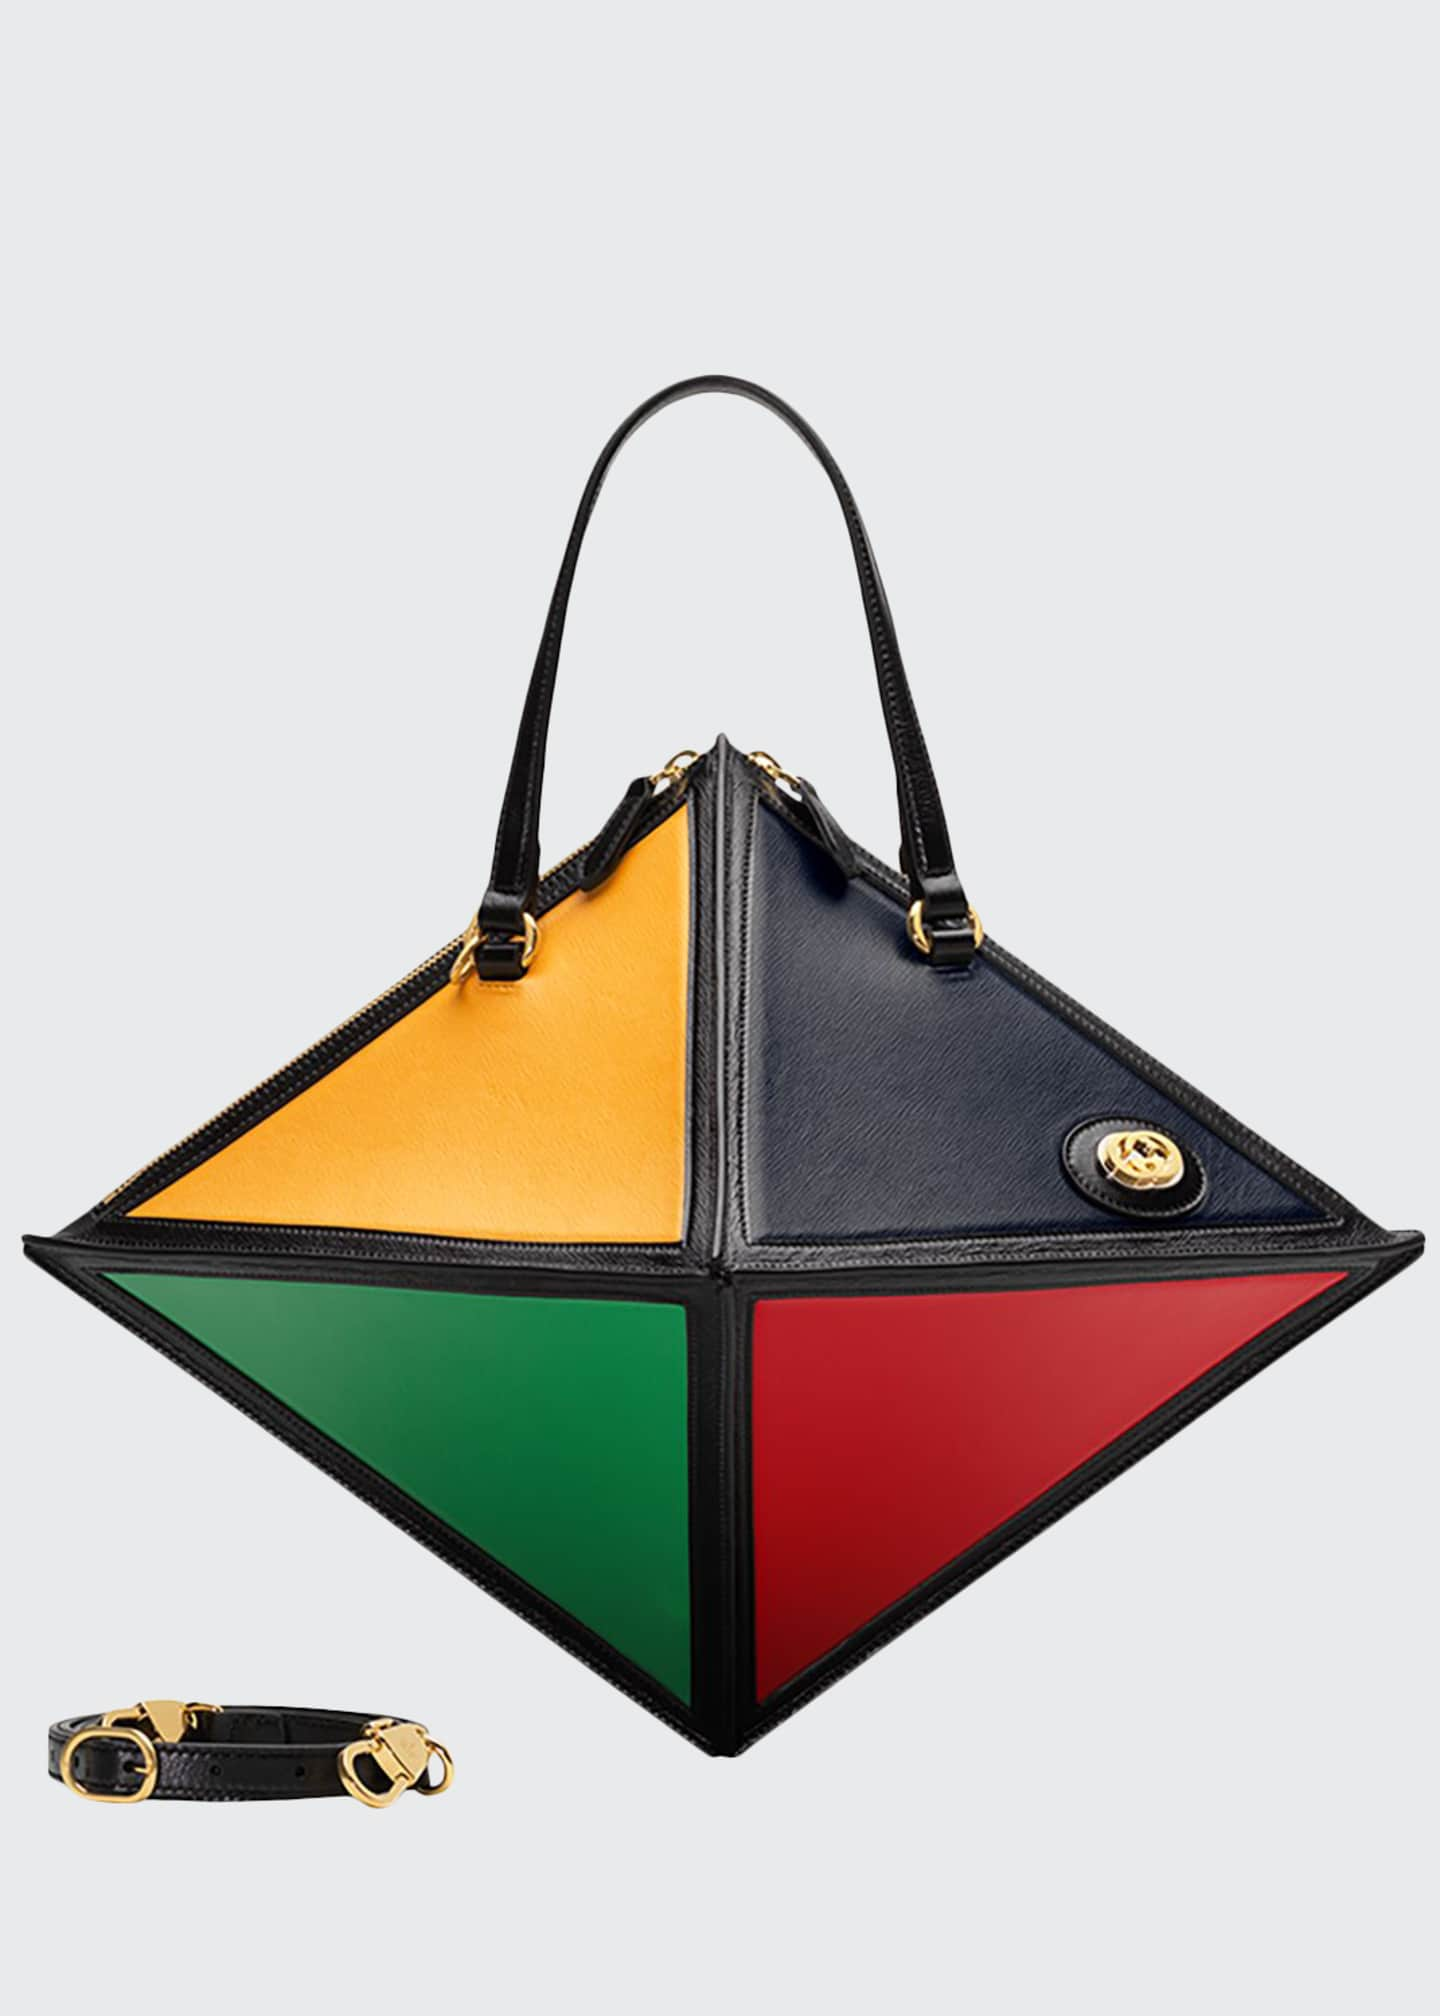 Gucci Geometrica Large Leather Top-Handle Bag